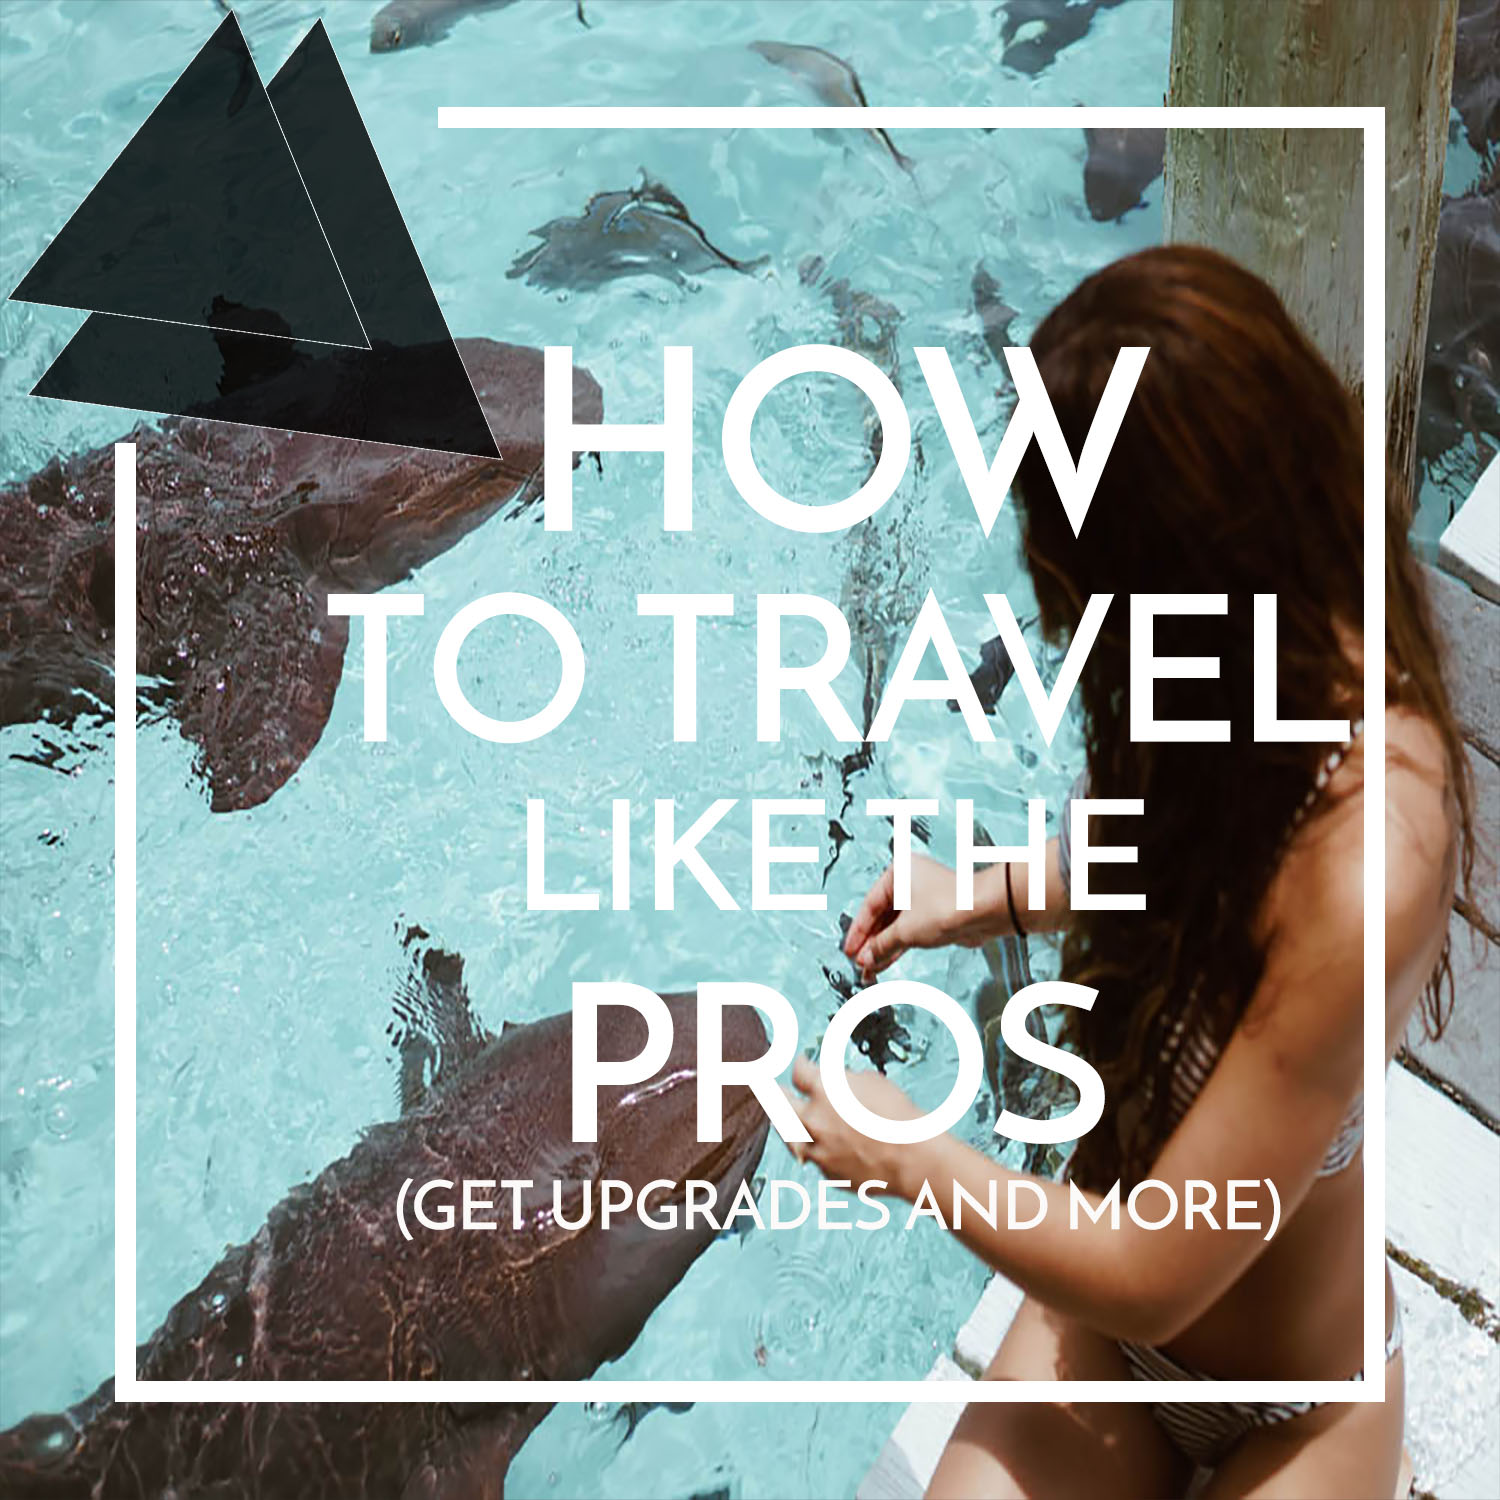 Secrets on how to travel like the pros and get upgrades and more